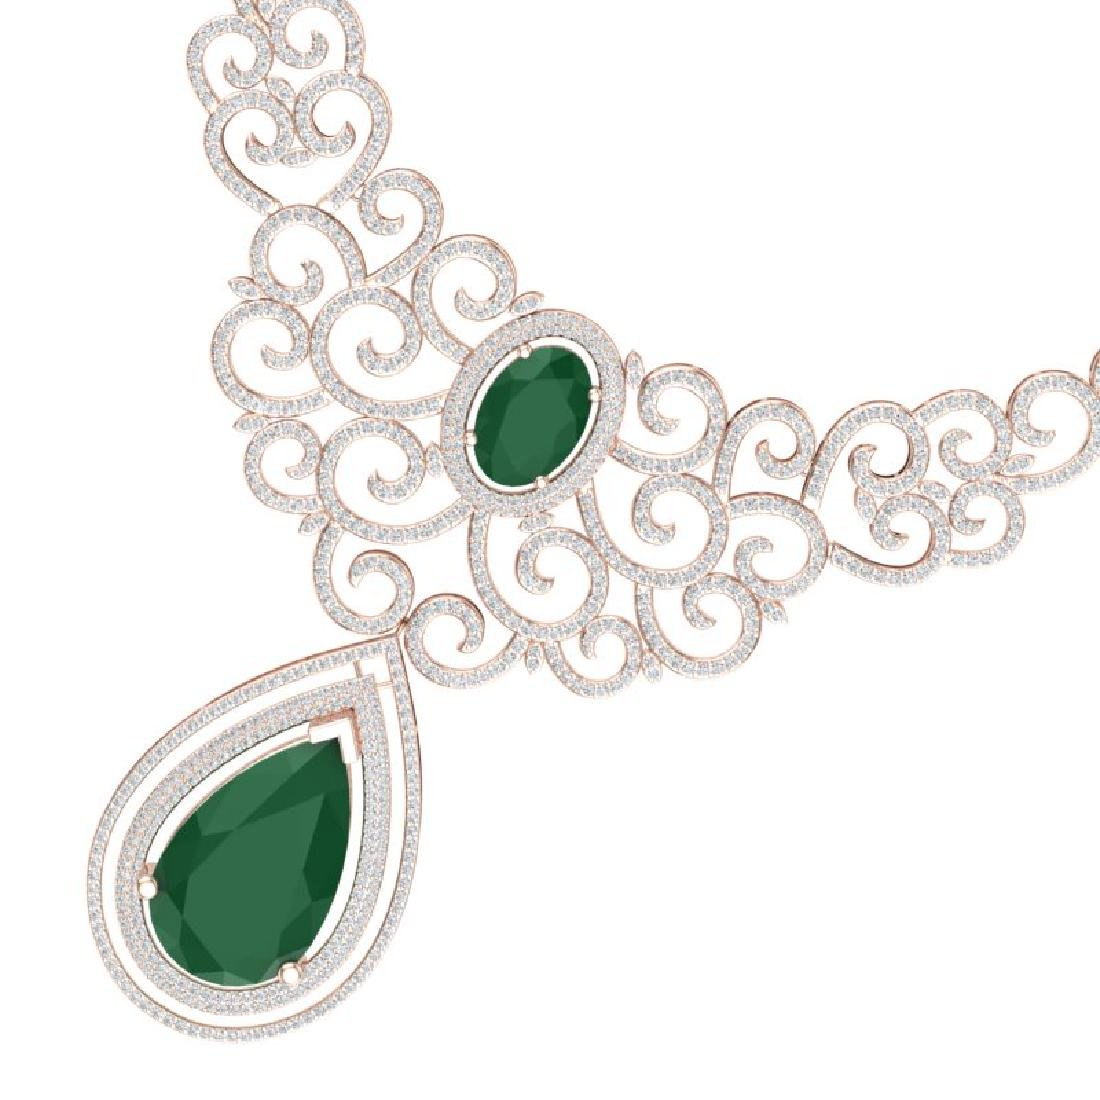 87.52 CTW Royalty Emerald & VS Diamond Necklace 18K